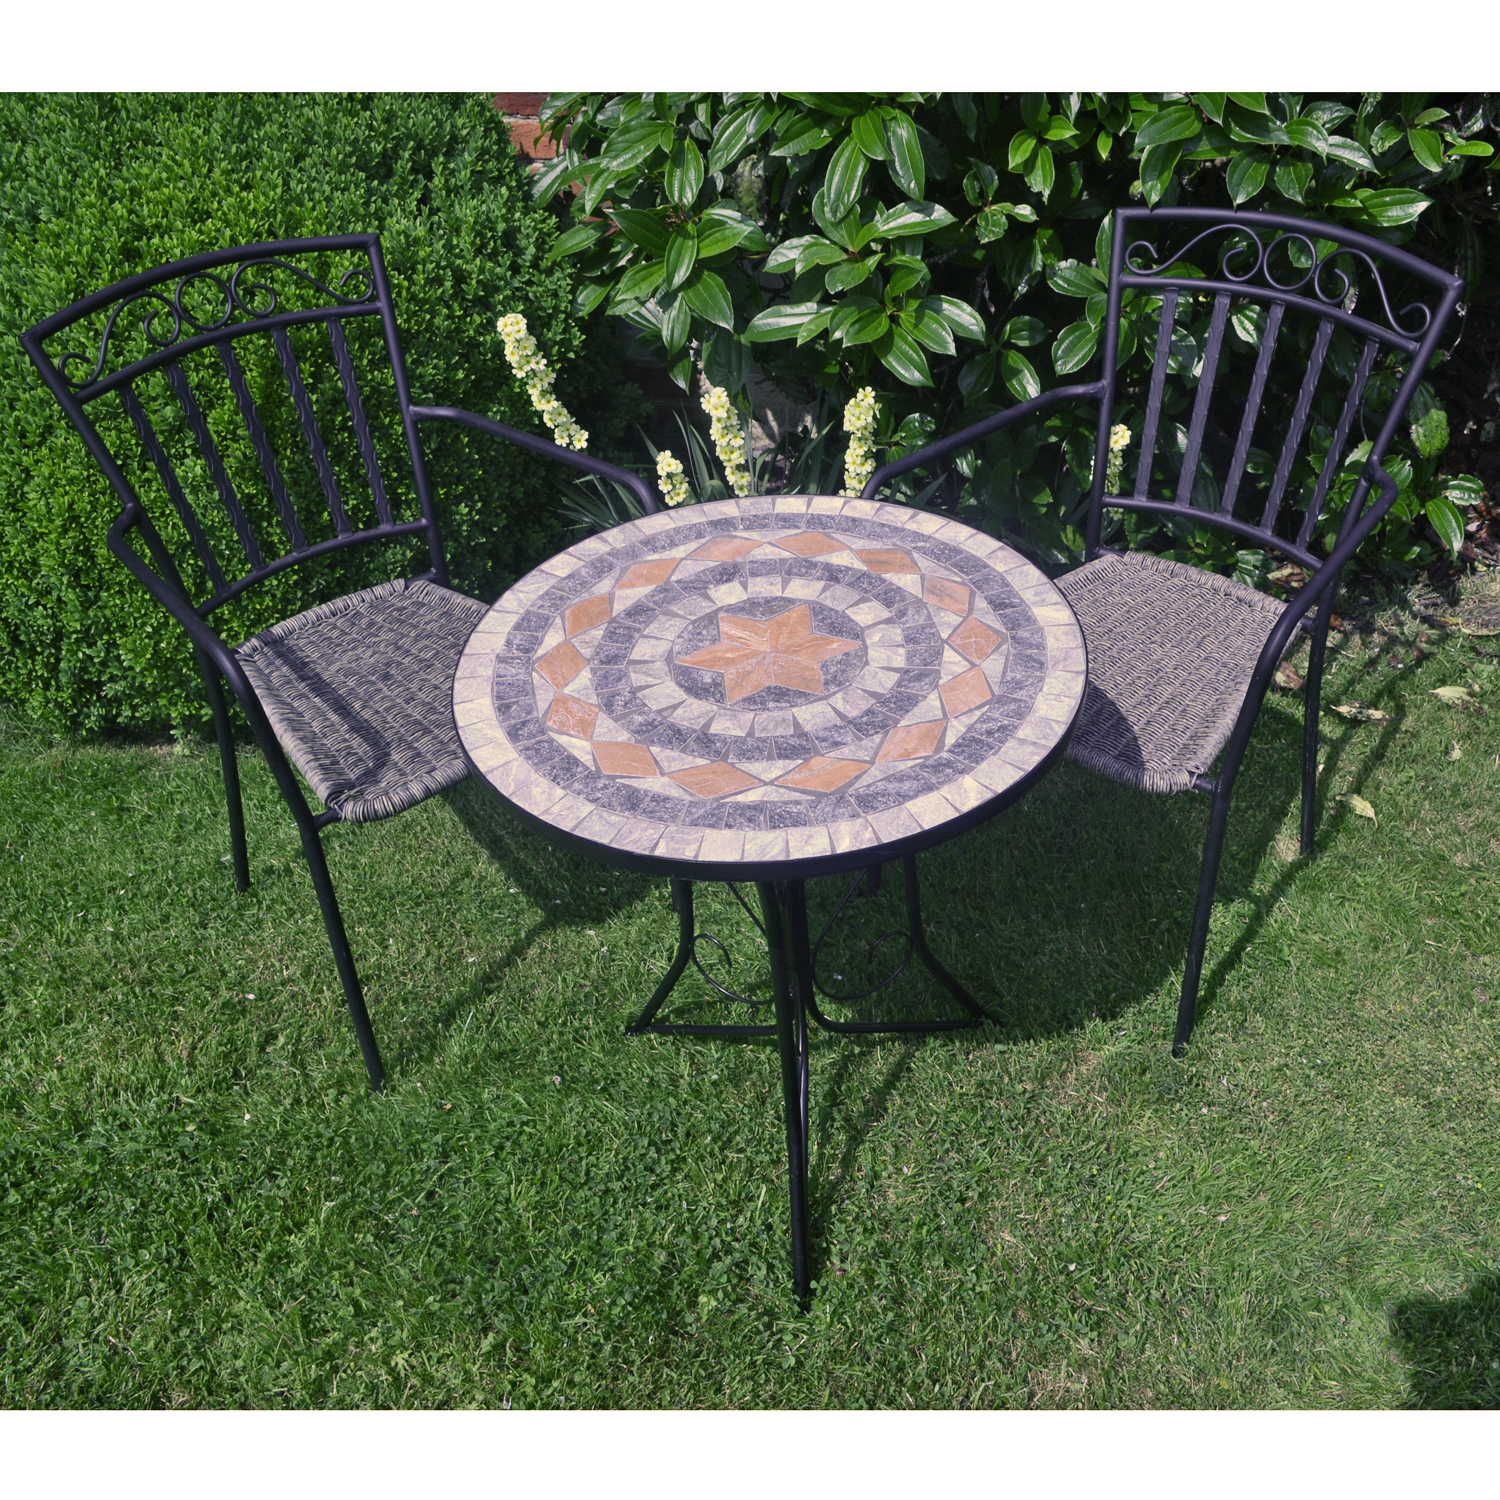 NOVA BISTRO 60CM SET MODENA OUTDOOR